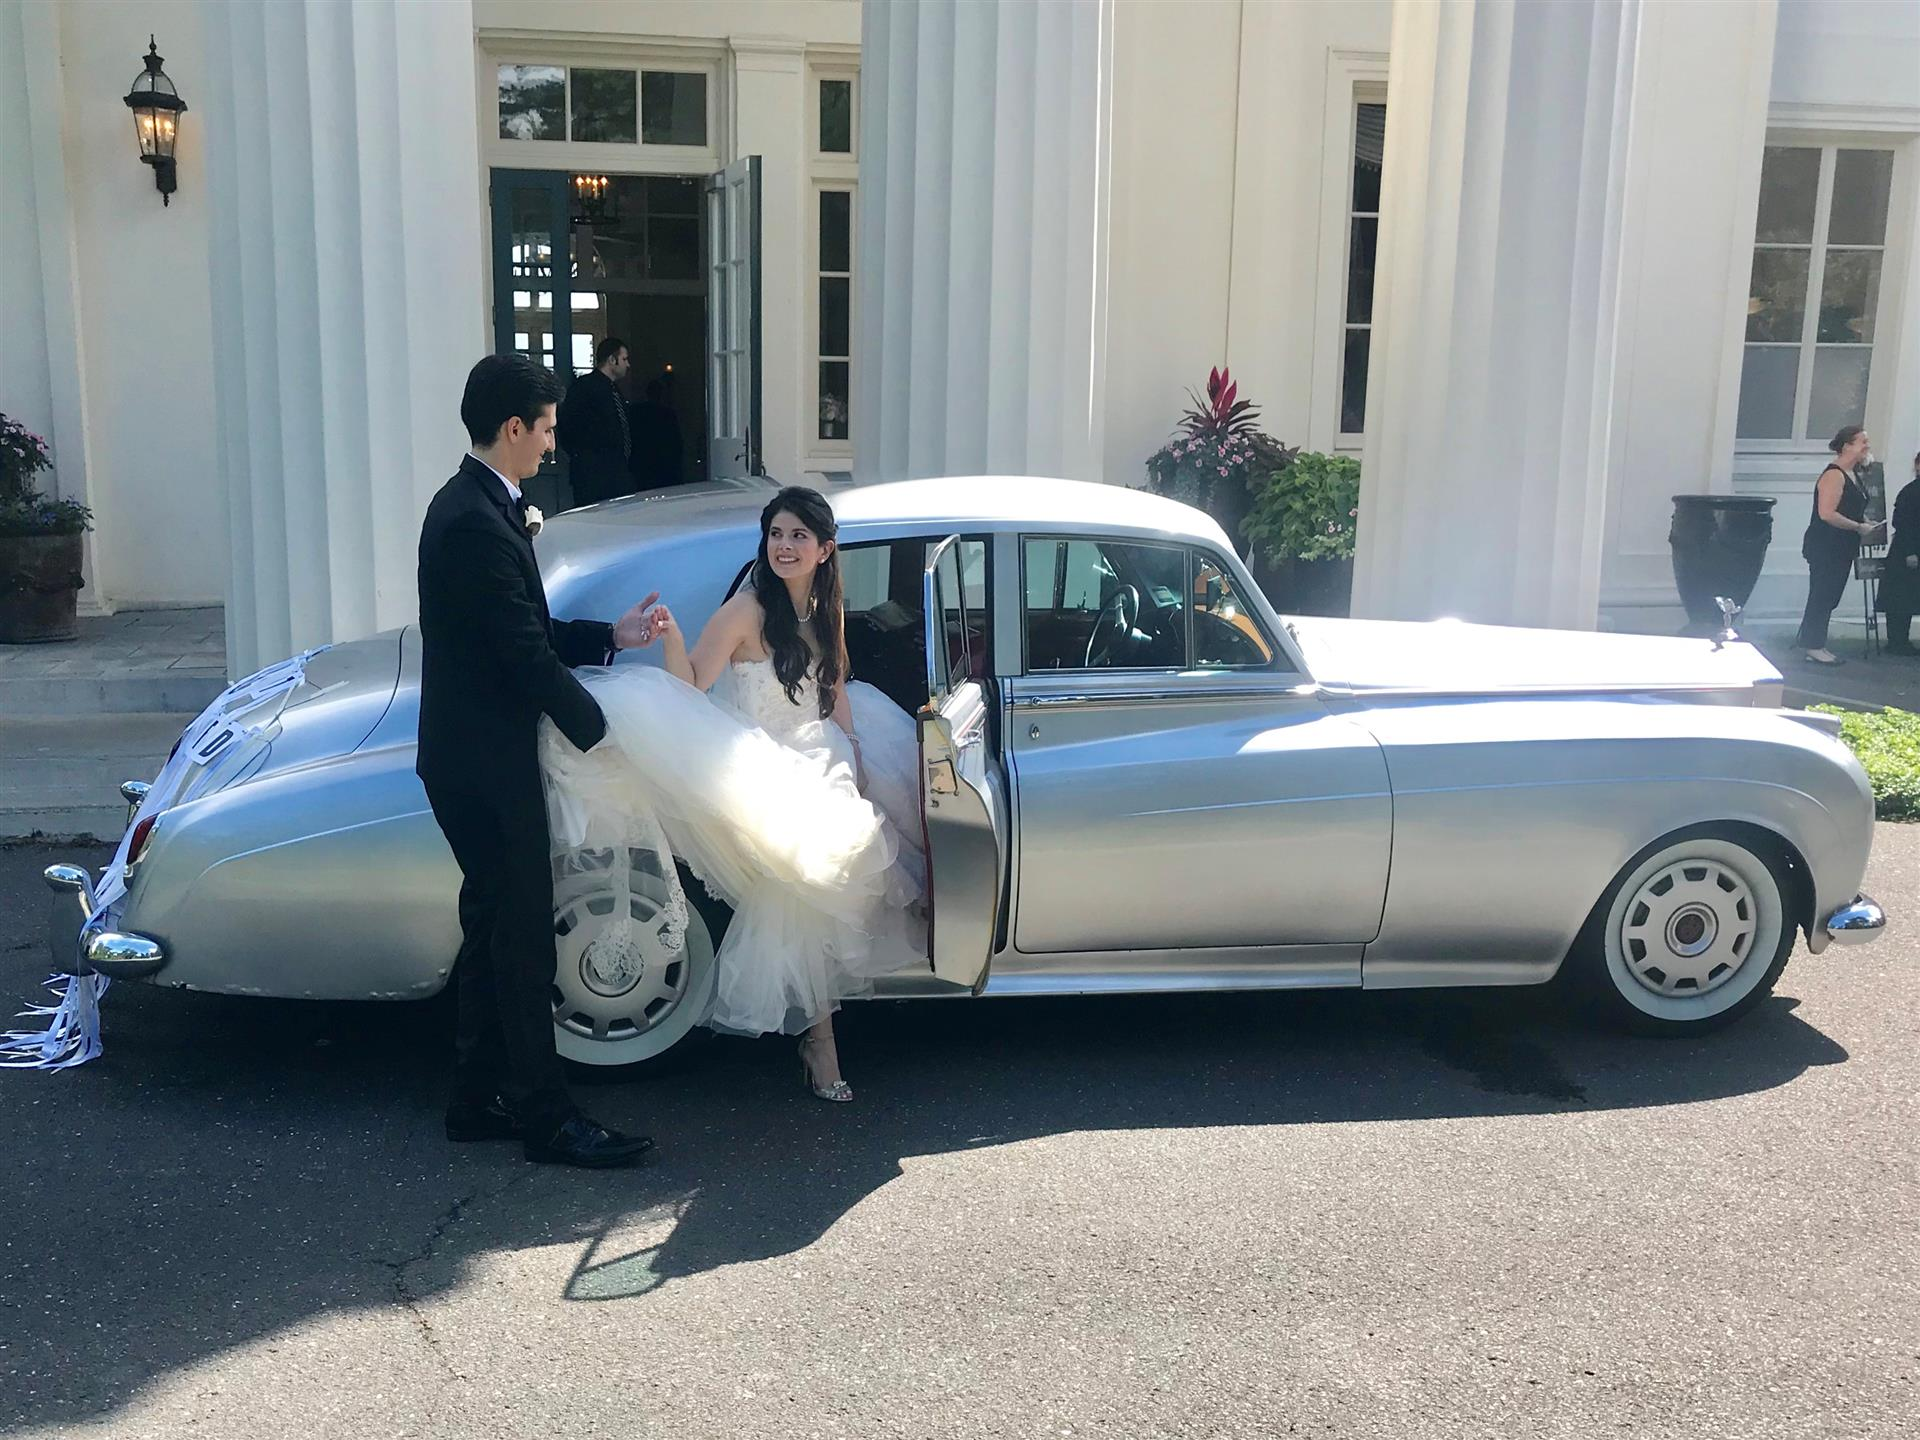 Groom helping bride out of rolls royce in front of white columned building